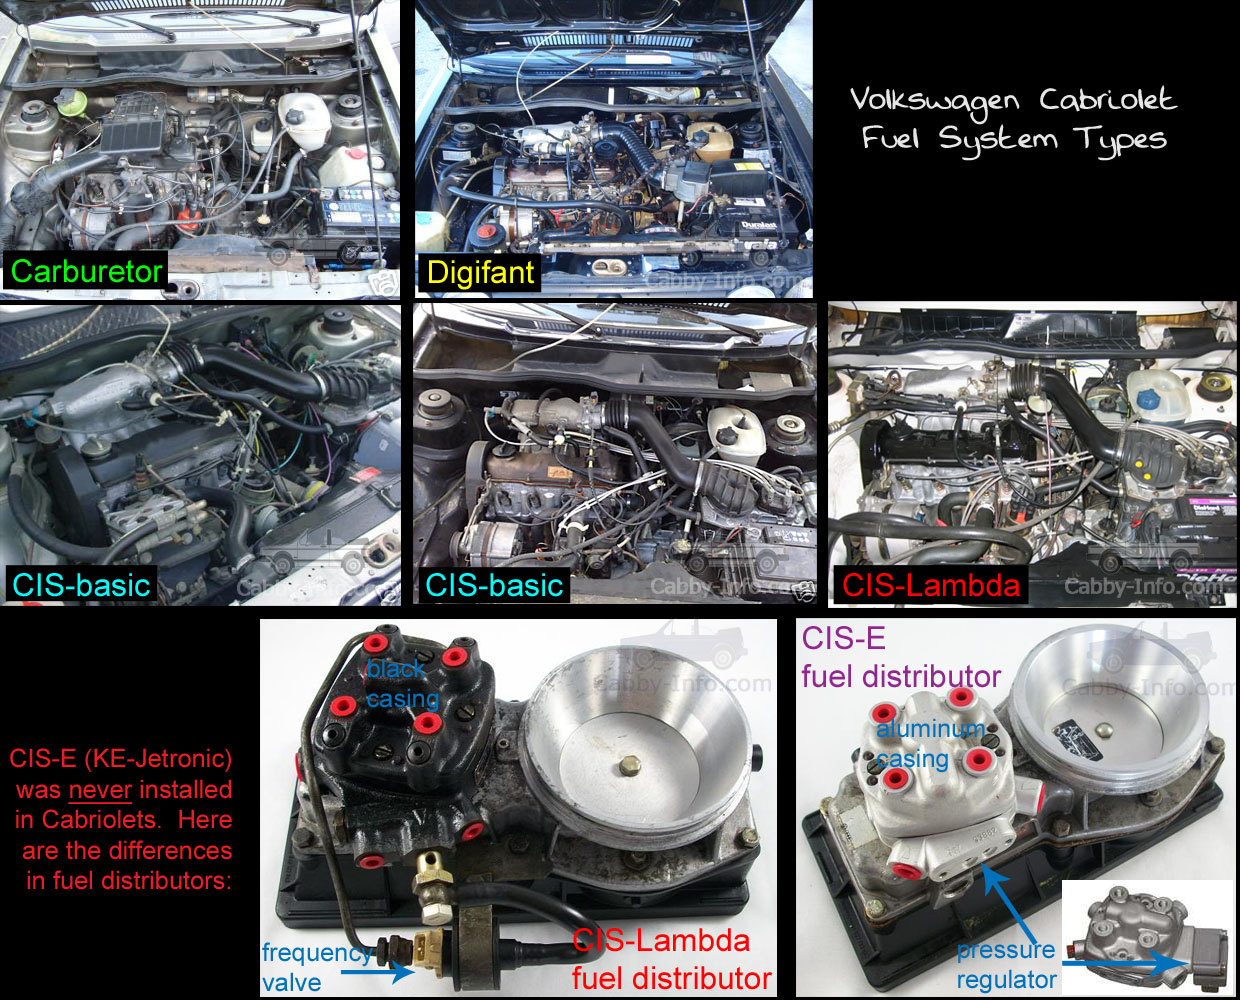 vwvortex com cis will not stay running it was cis lambda from the factory provided a previous owner did not swap the engine fuel system it would still be cis lambda